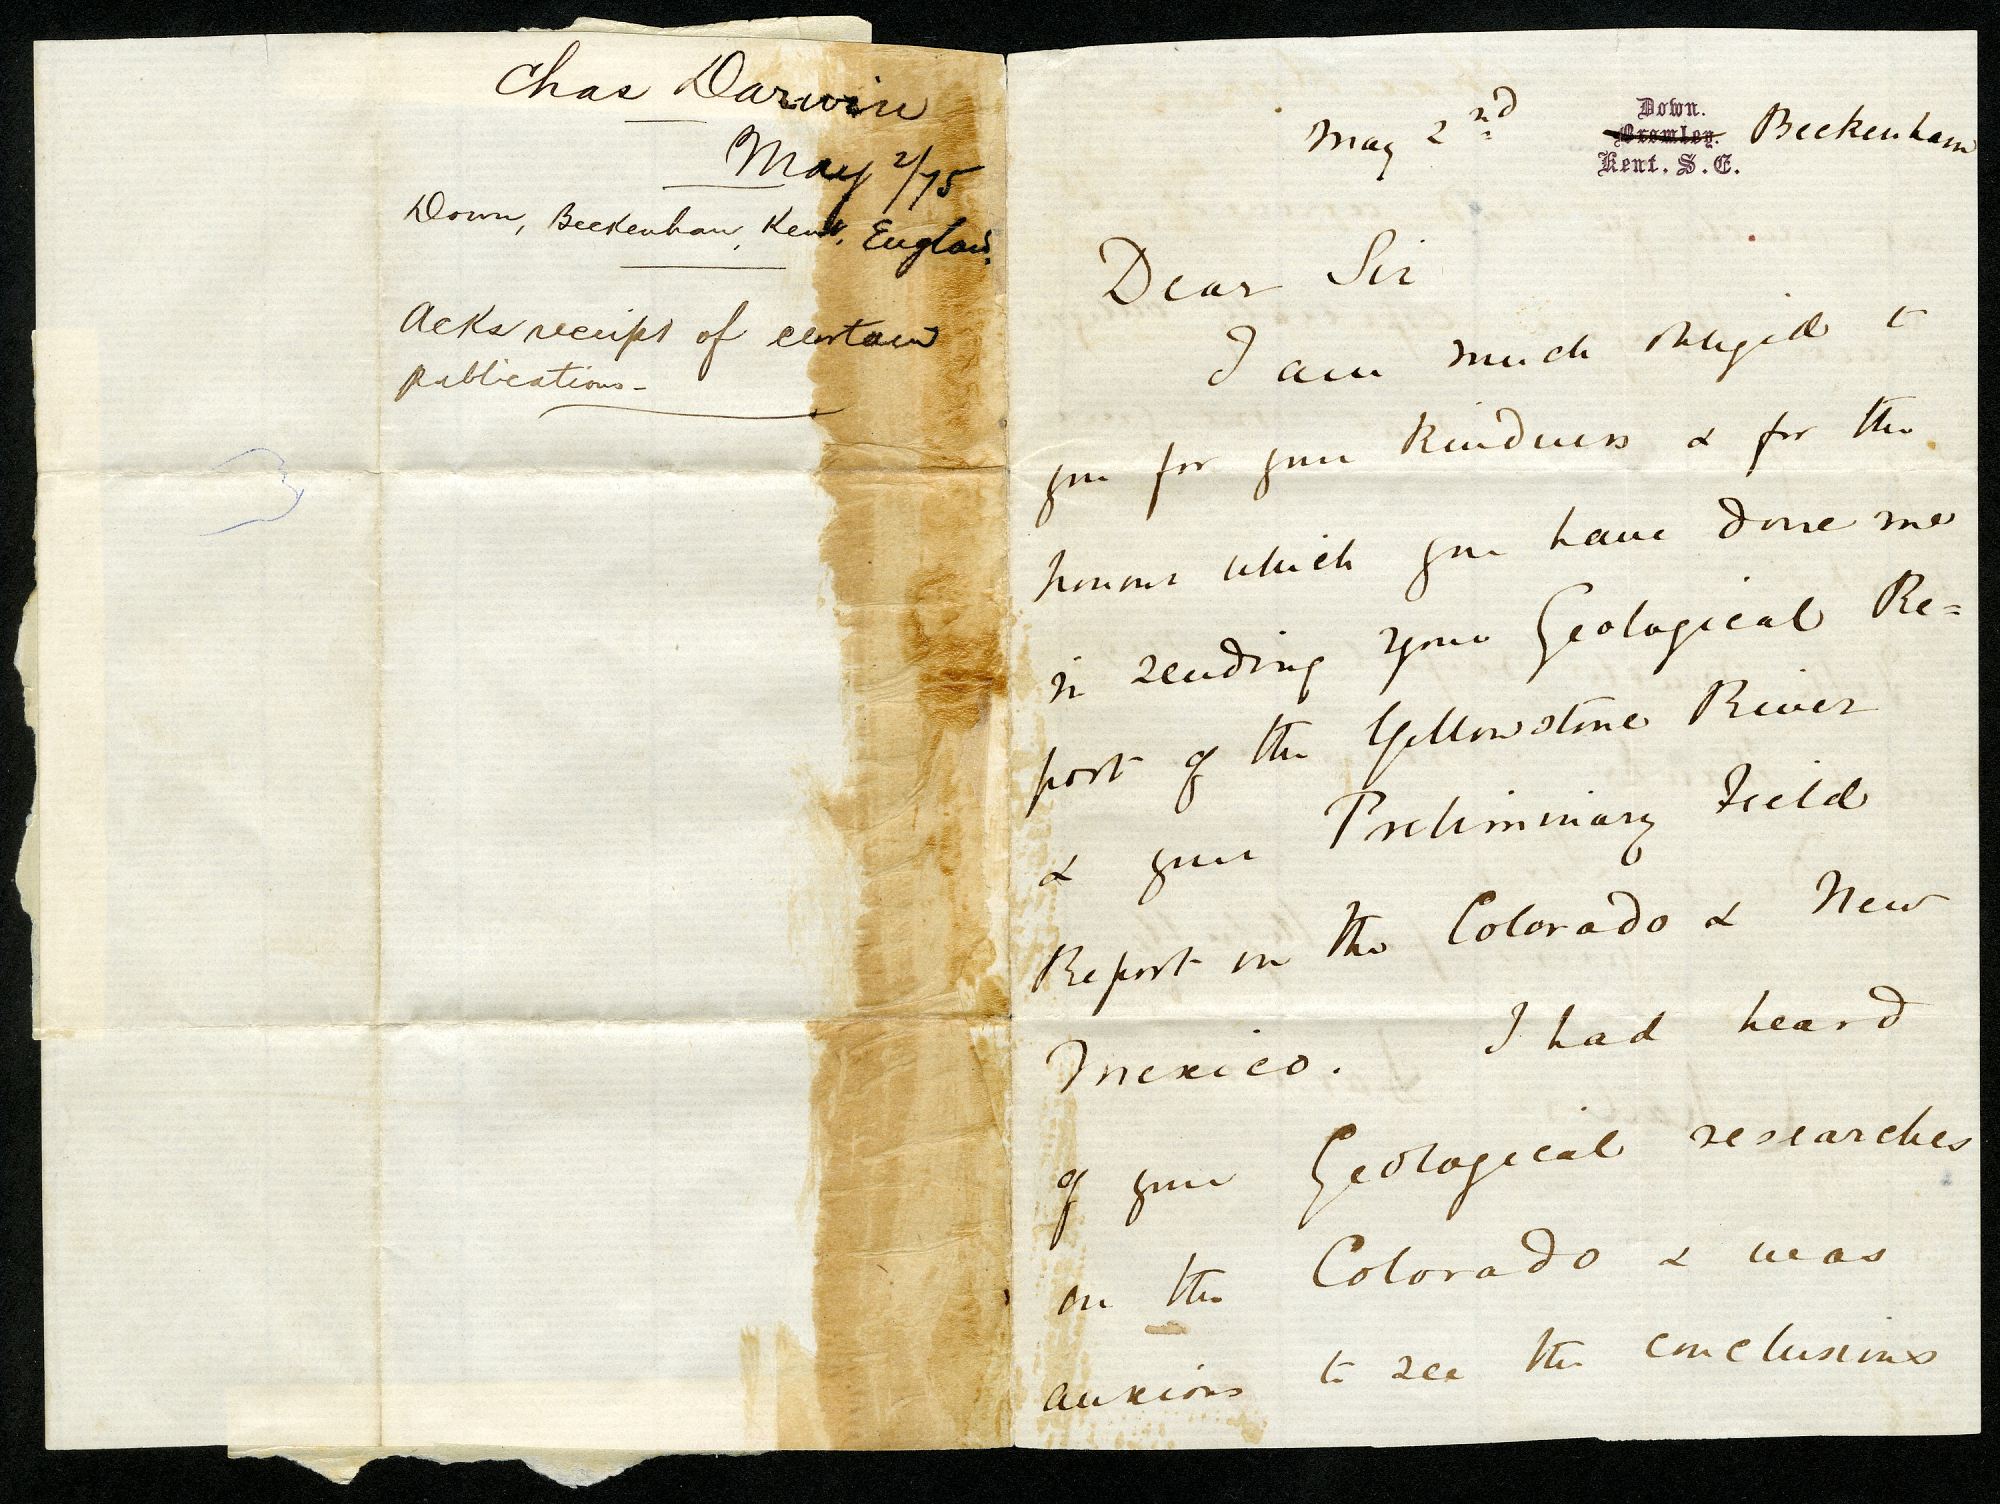 """A letter dated May 2nd and addressed as """"Dear Sir."""""""